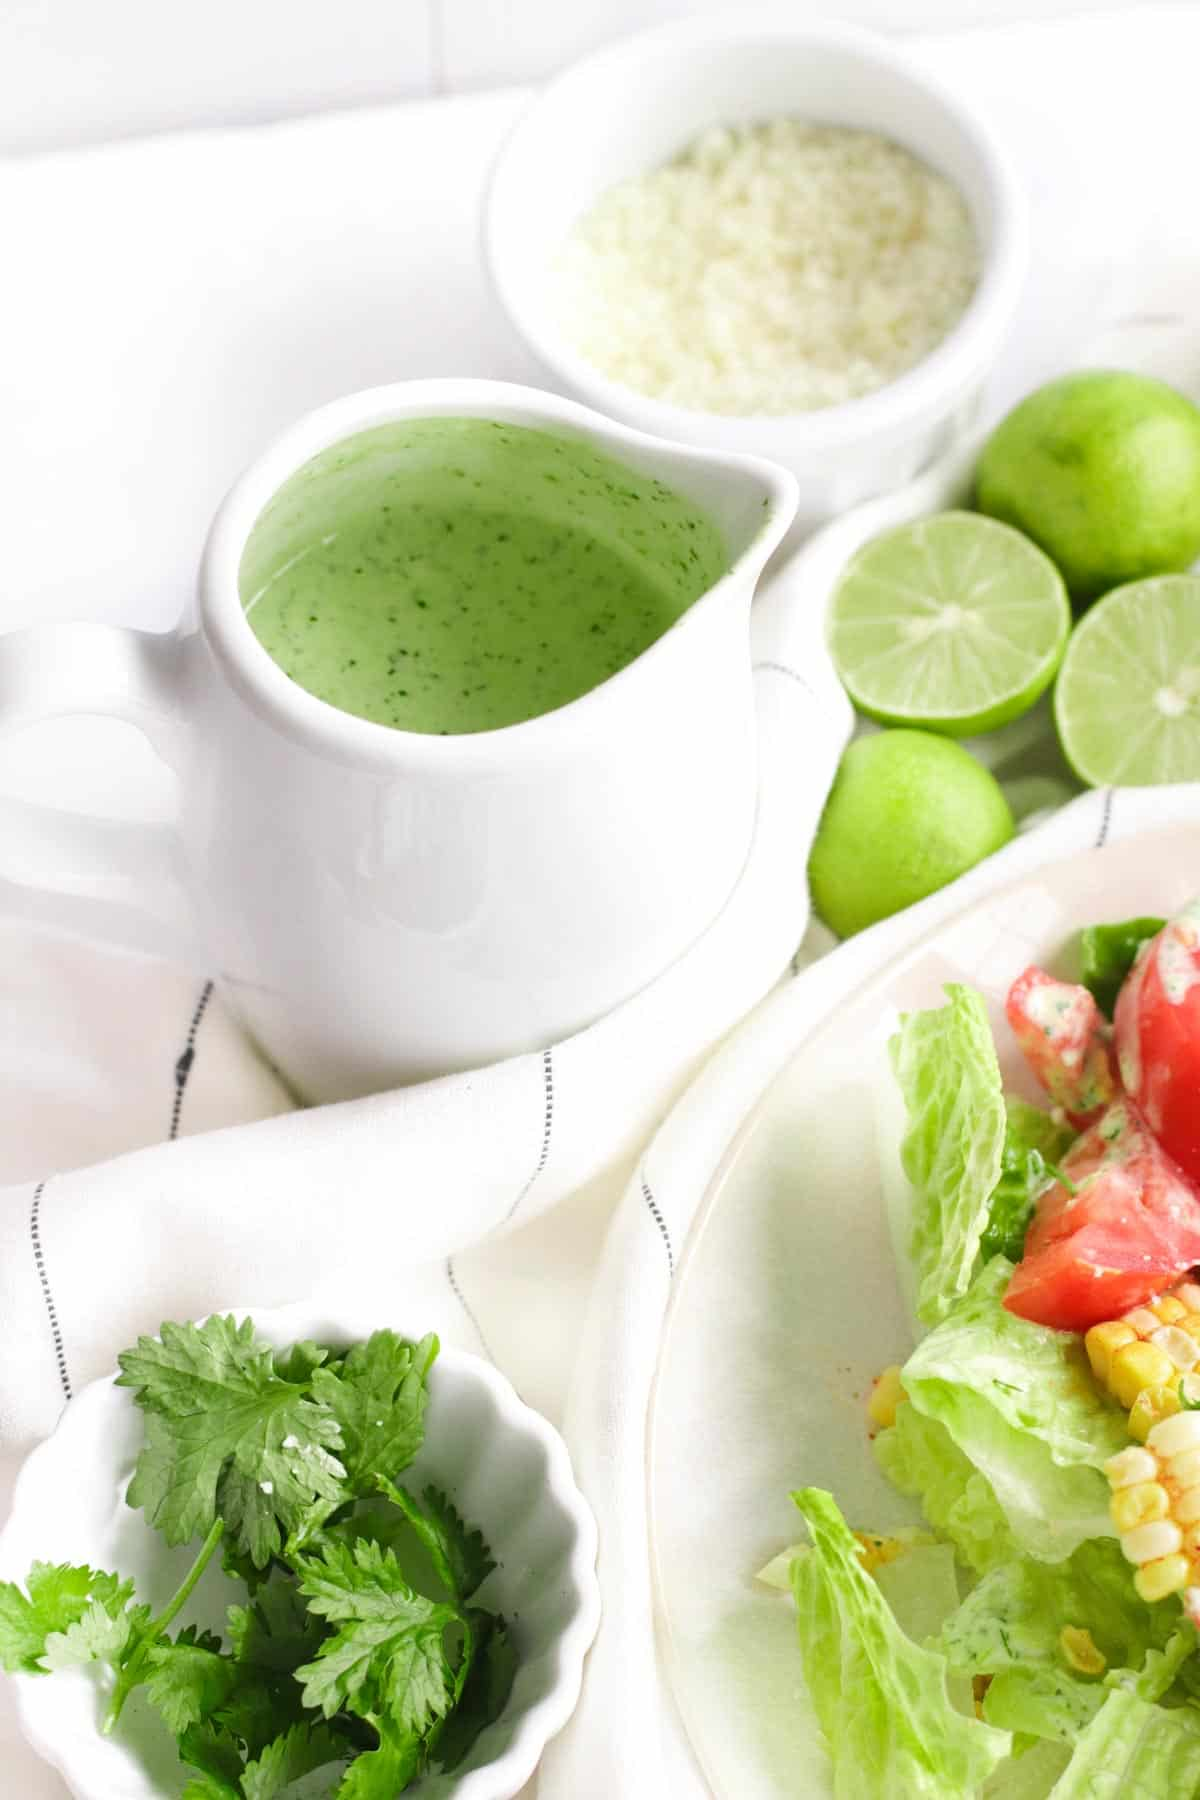 container of dressing, bowls of salad and cilantro, and lime nestled in a napkin on a table